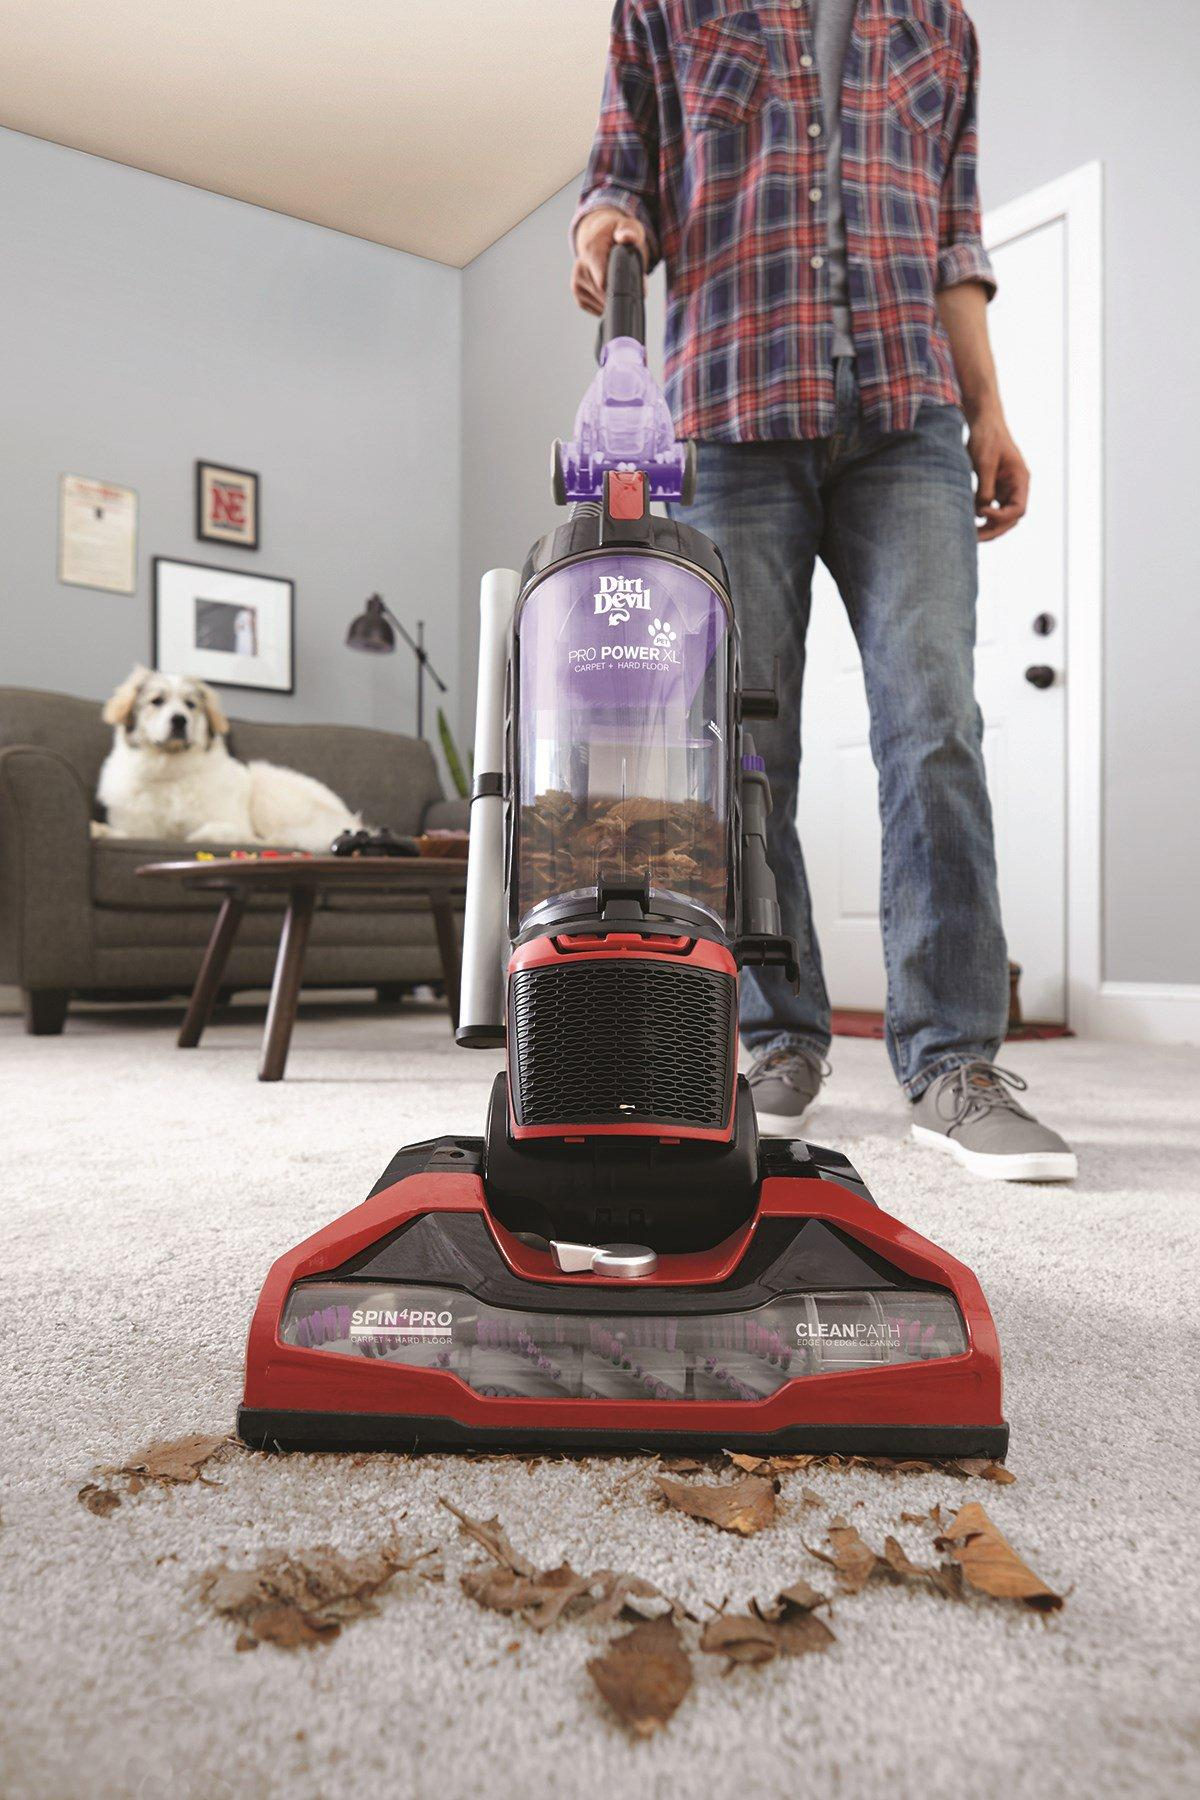 Pro Power XL Pet Upright Vacuum5